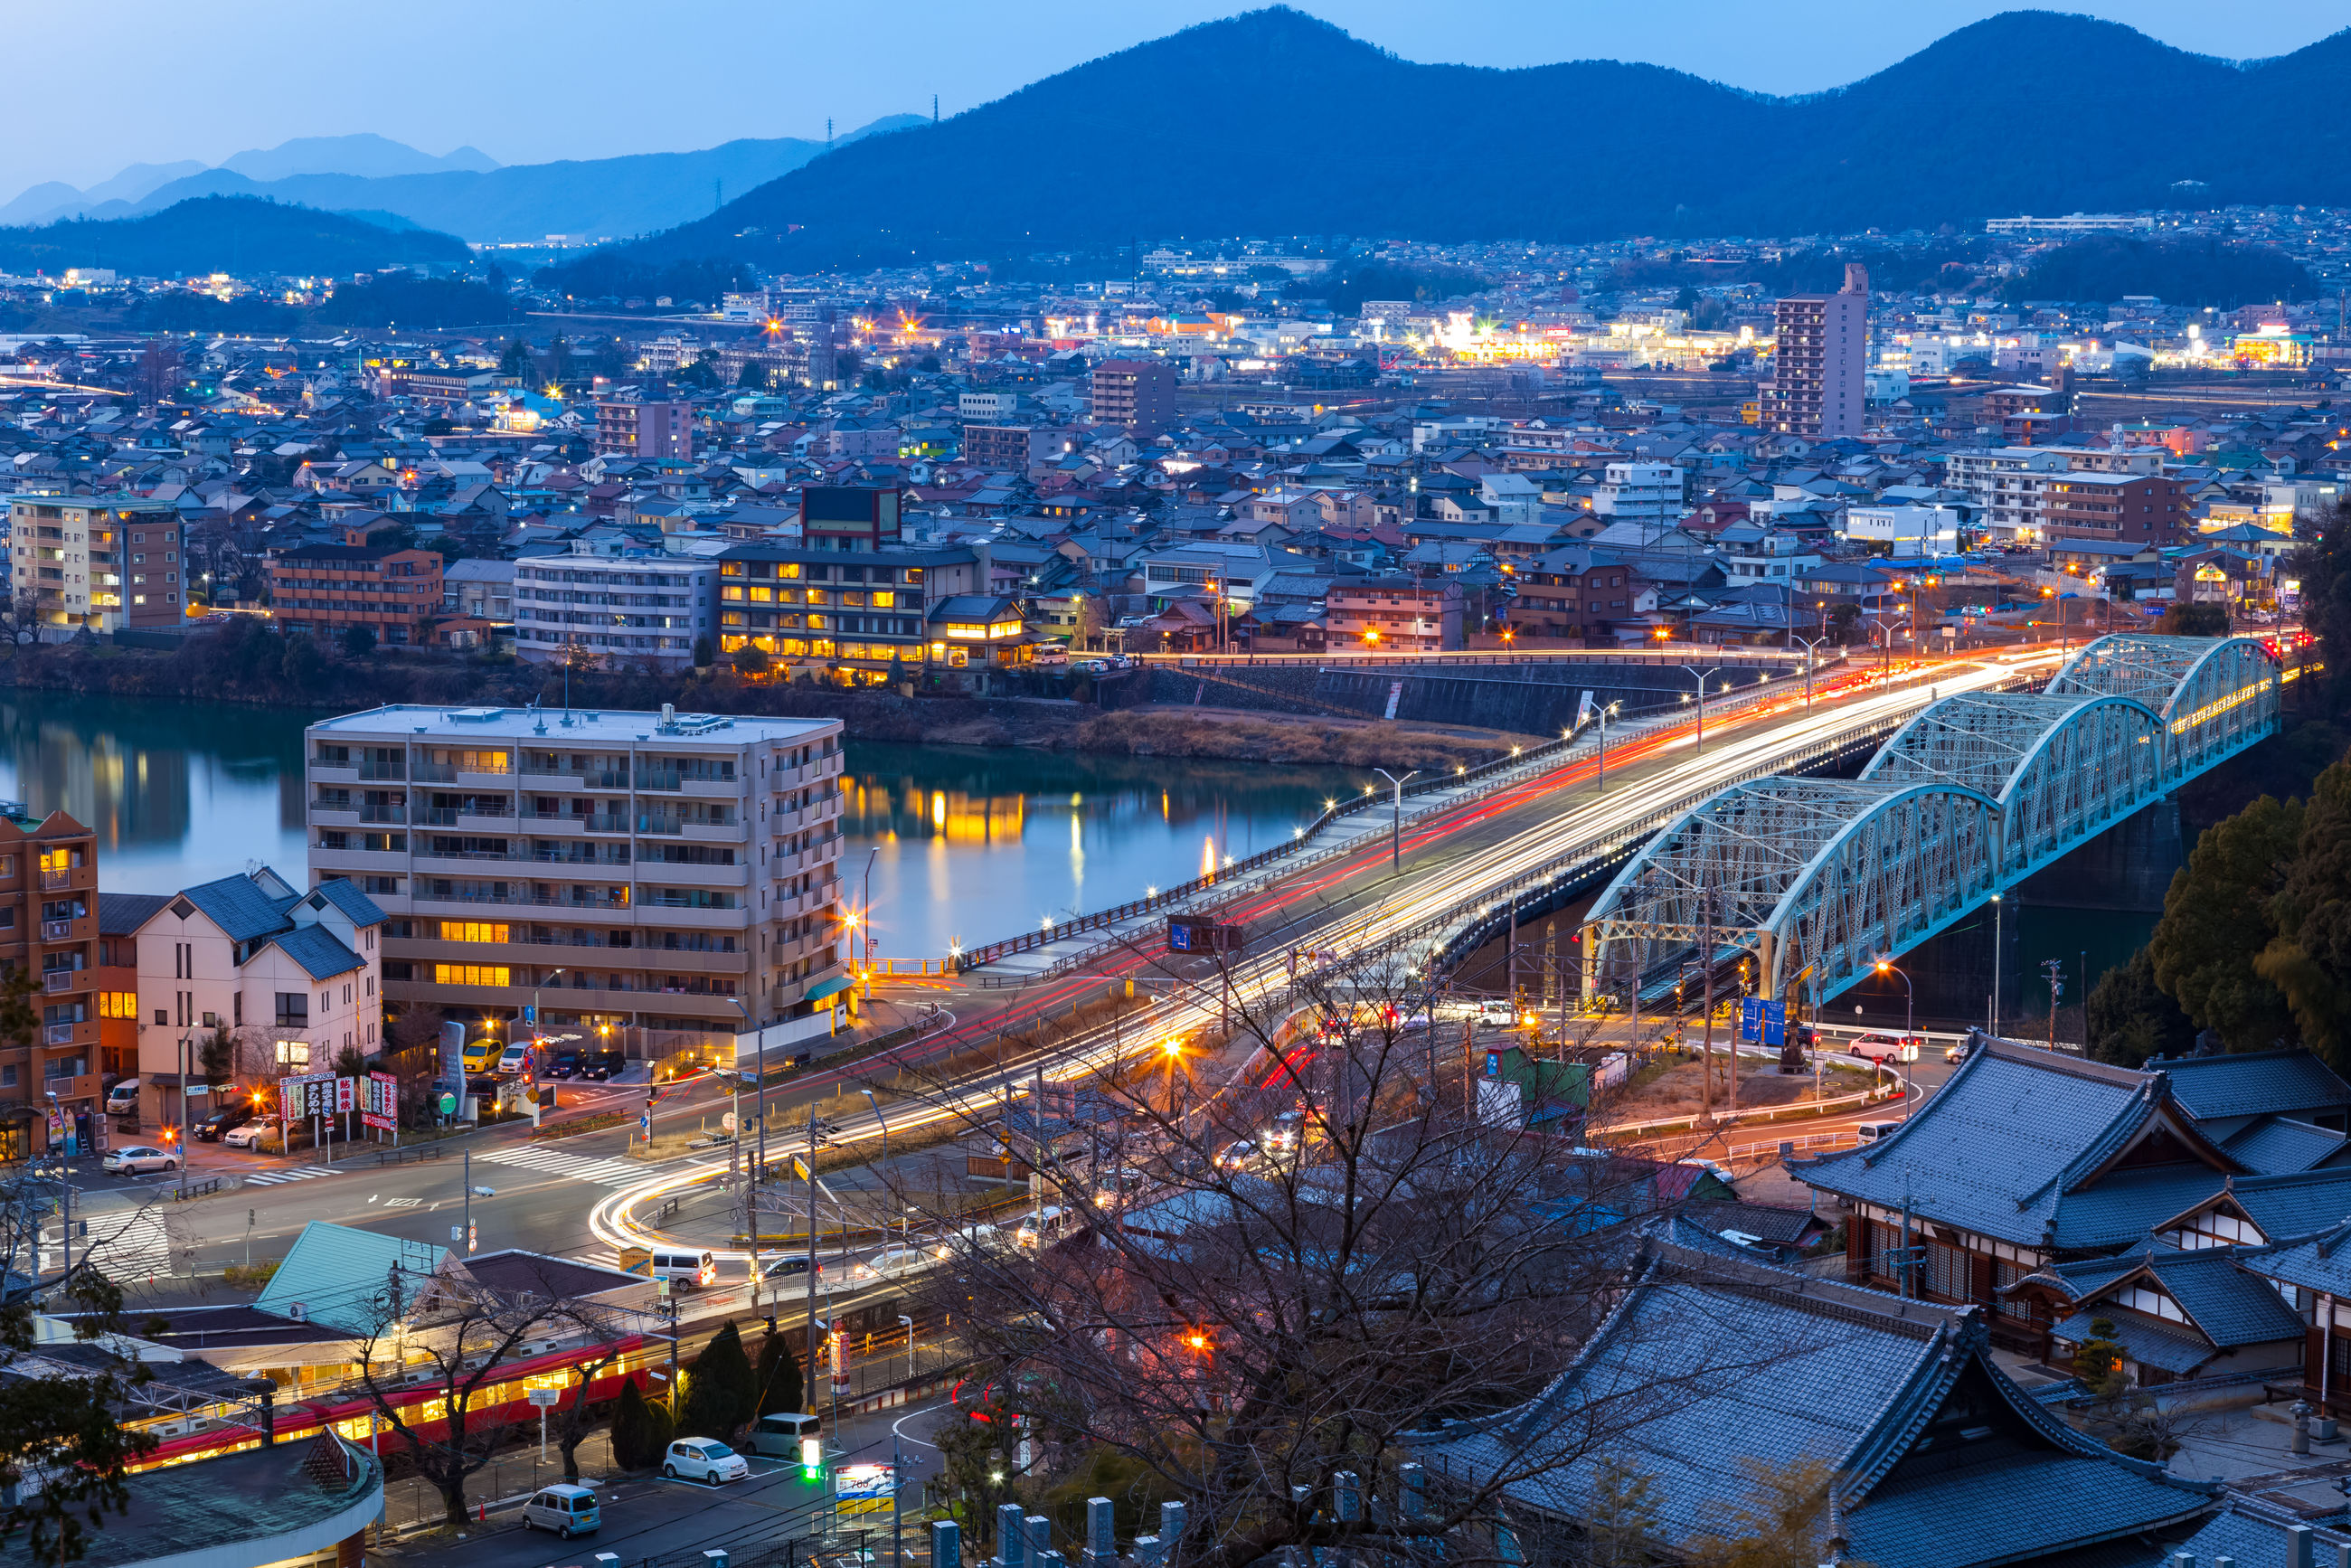 architecture, cityscape, city, built structure, illuminated, building exterior, high angle view, crowded, night, transportation, bridge - man made structure, river, connection, mountain, aerial view, city life, residential district, bridge, residential building, travel destinations